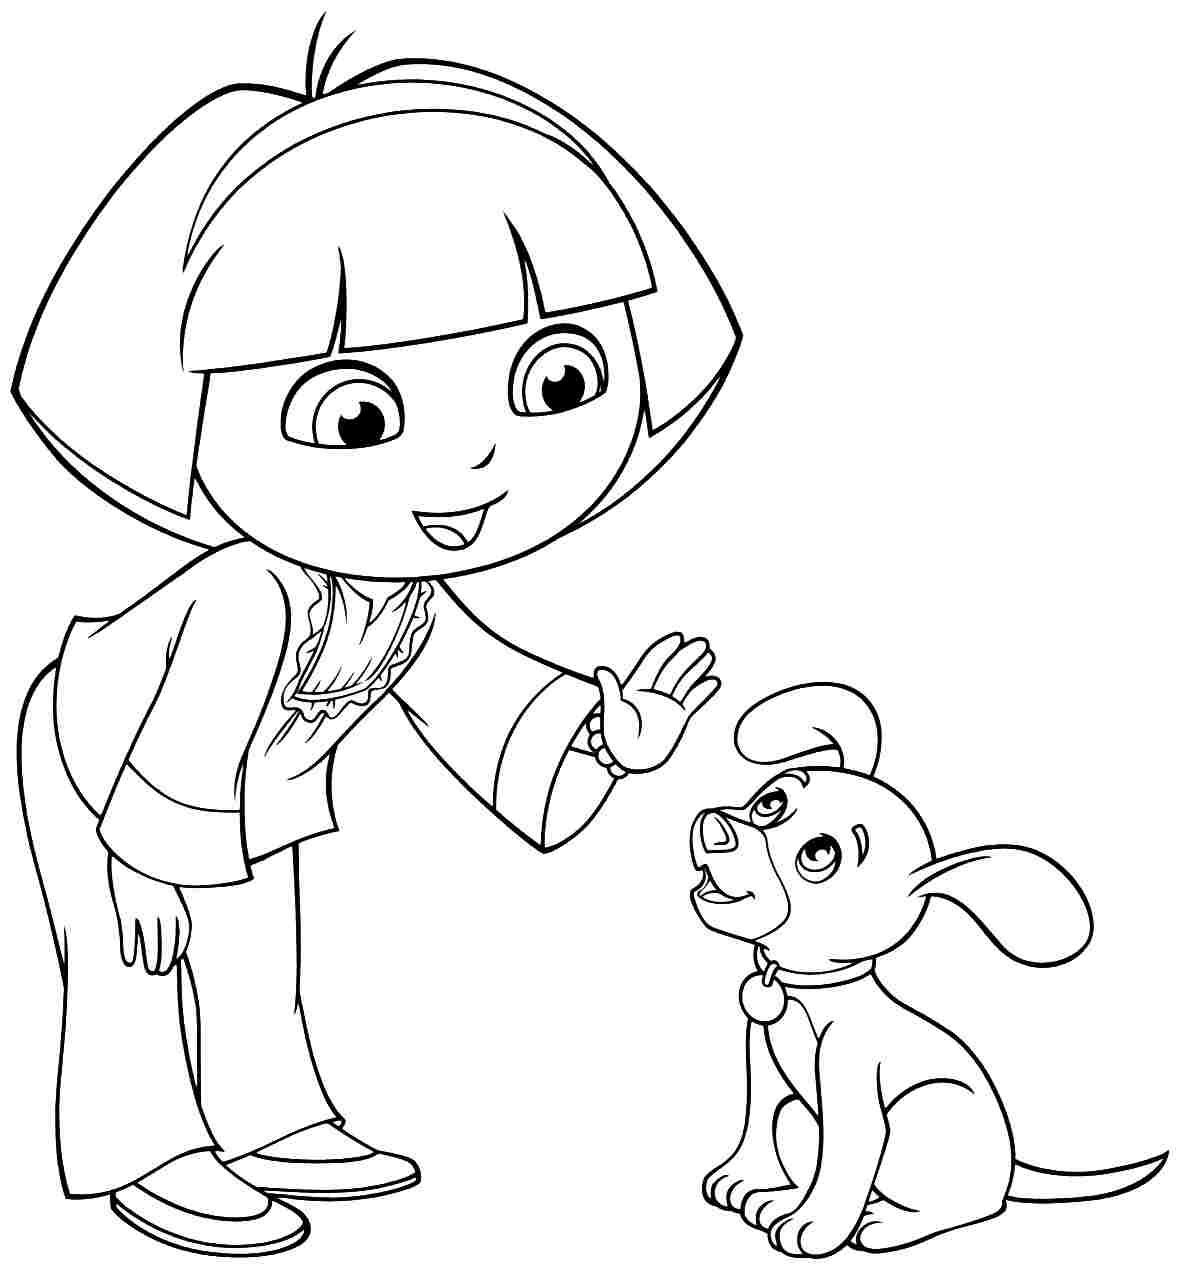 Dora Colouring Pages Online Puppy Coloring Pages Dora Coloring